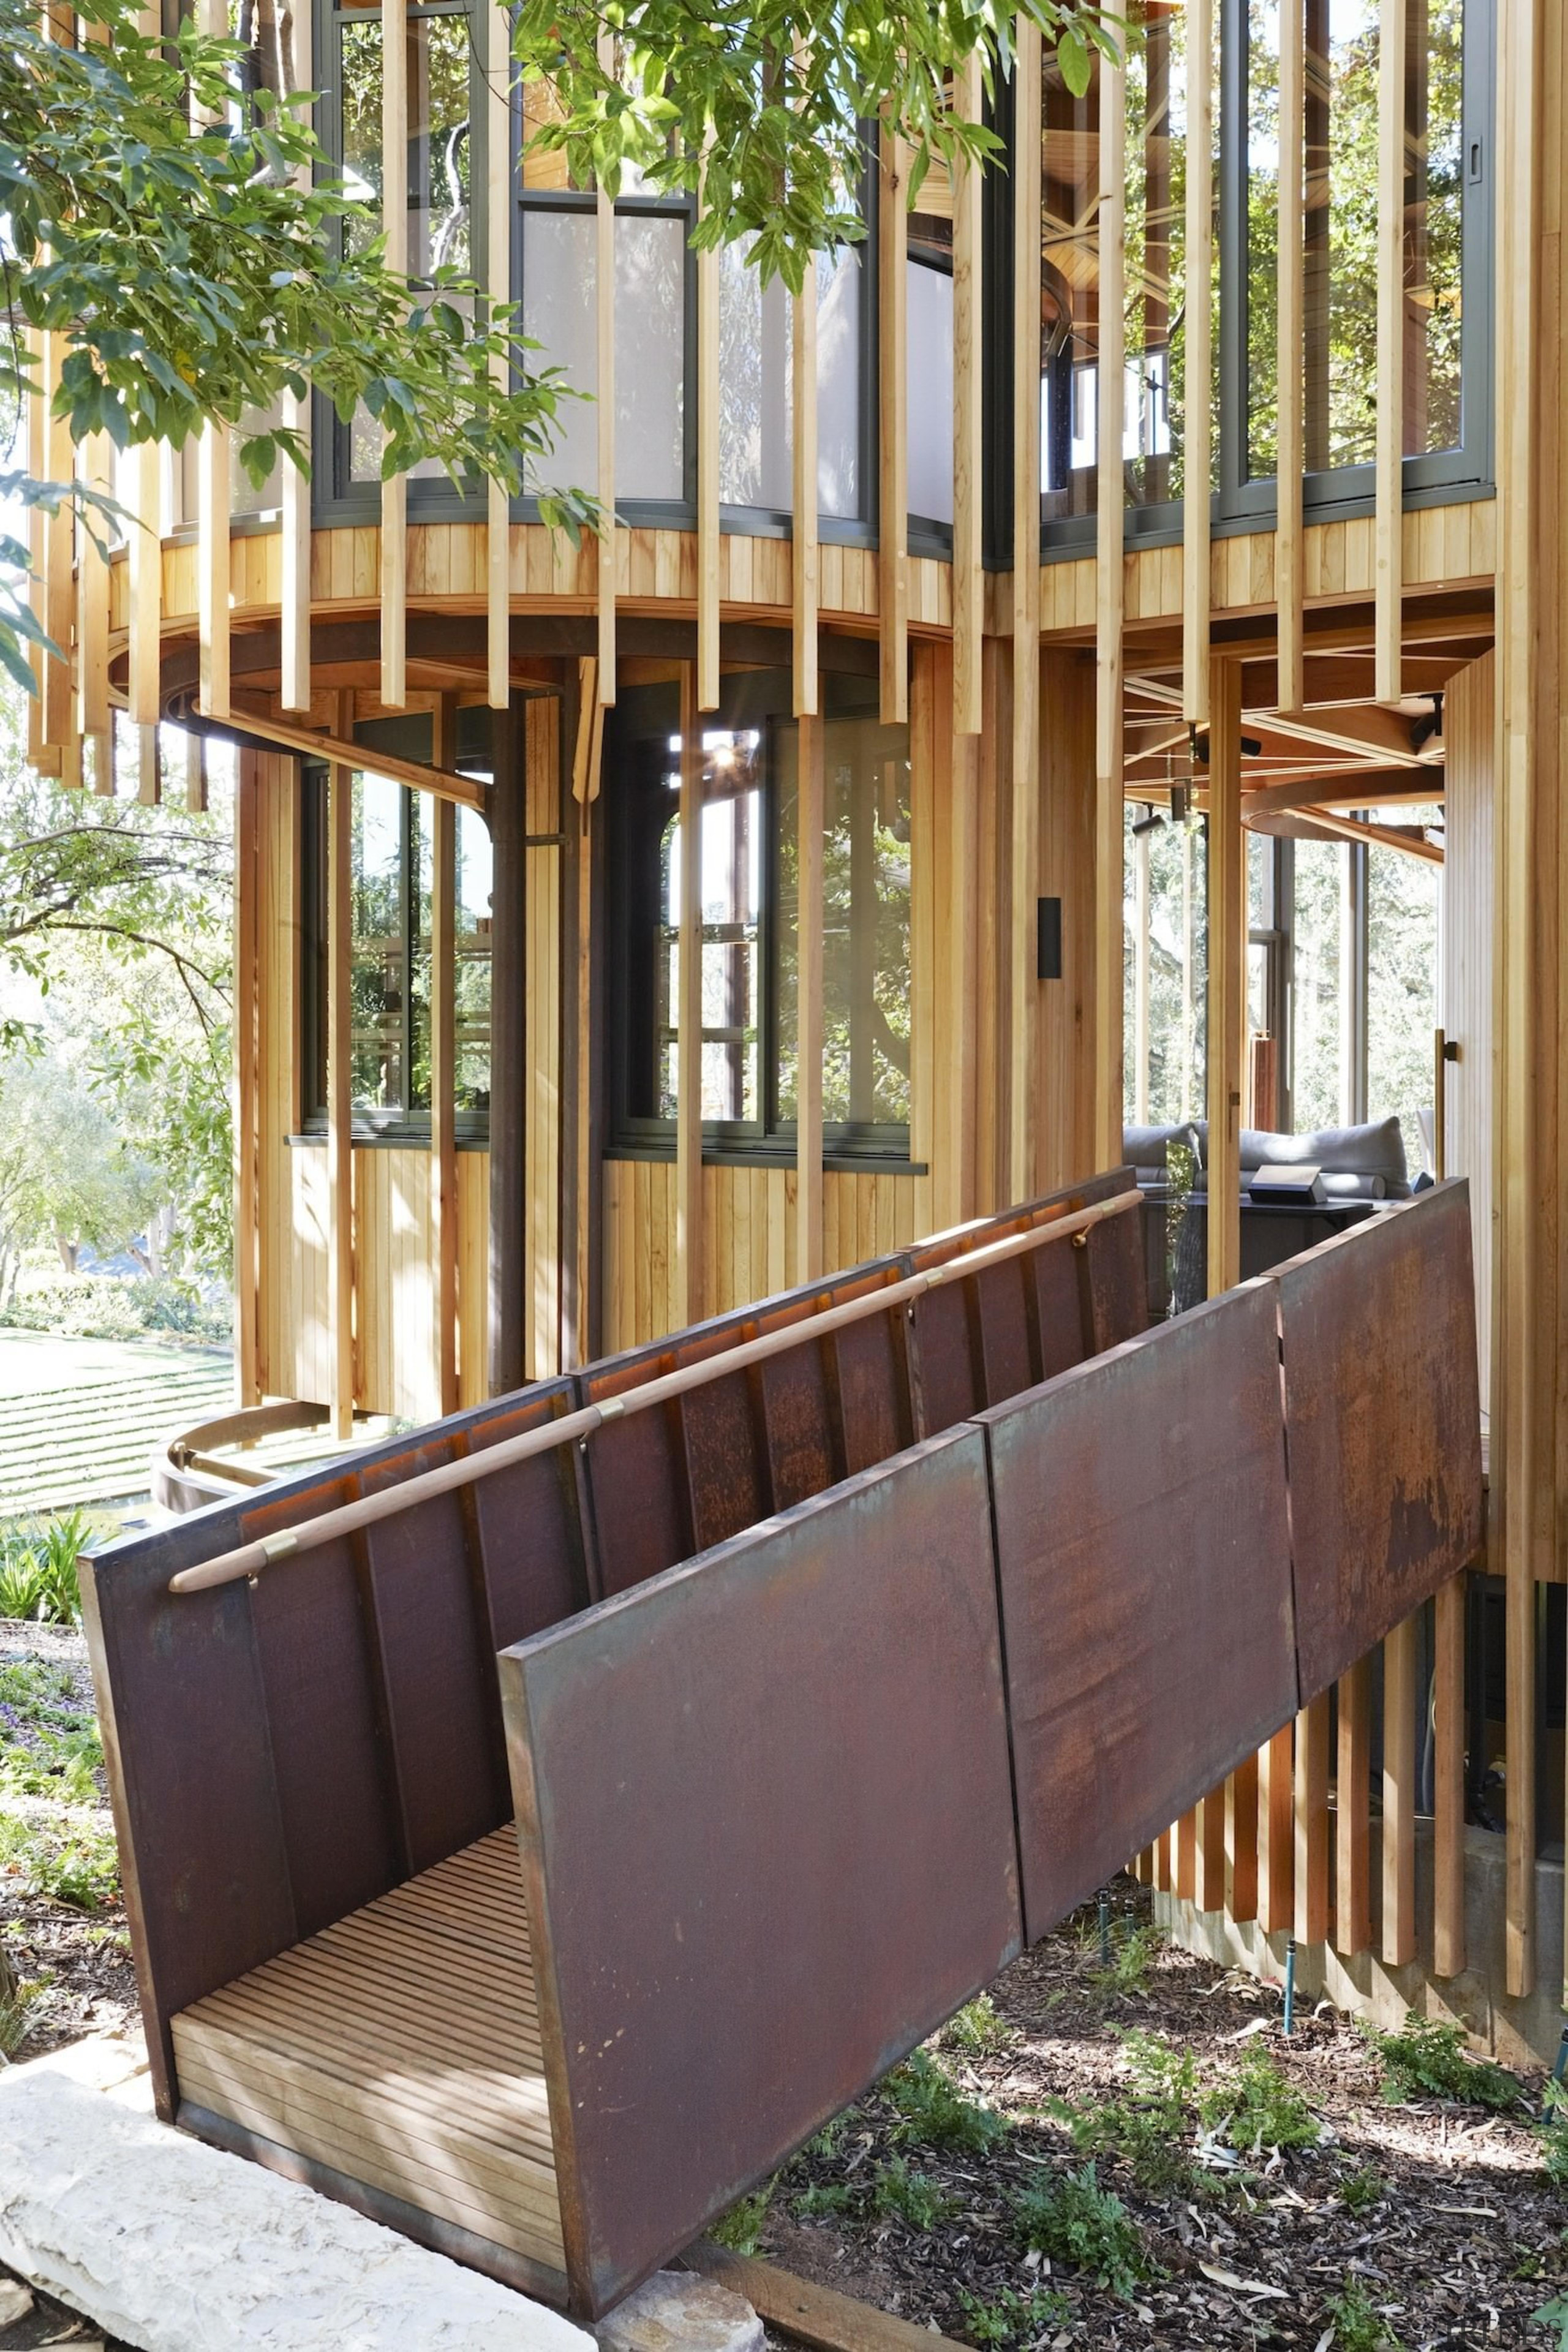 Architect: Malan VorsterPhotography by Adam Letch, Micky deck, furniture, handrail, outdoor structure, porch, stairs